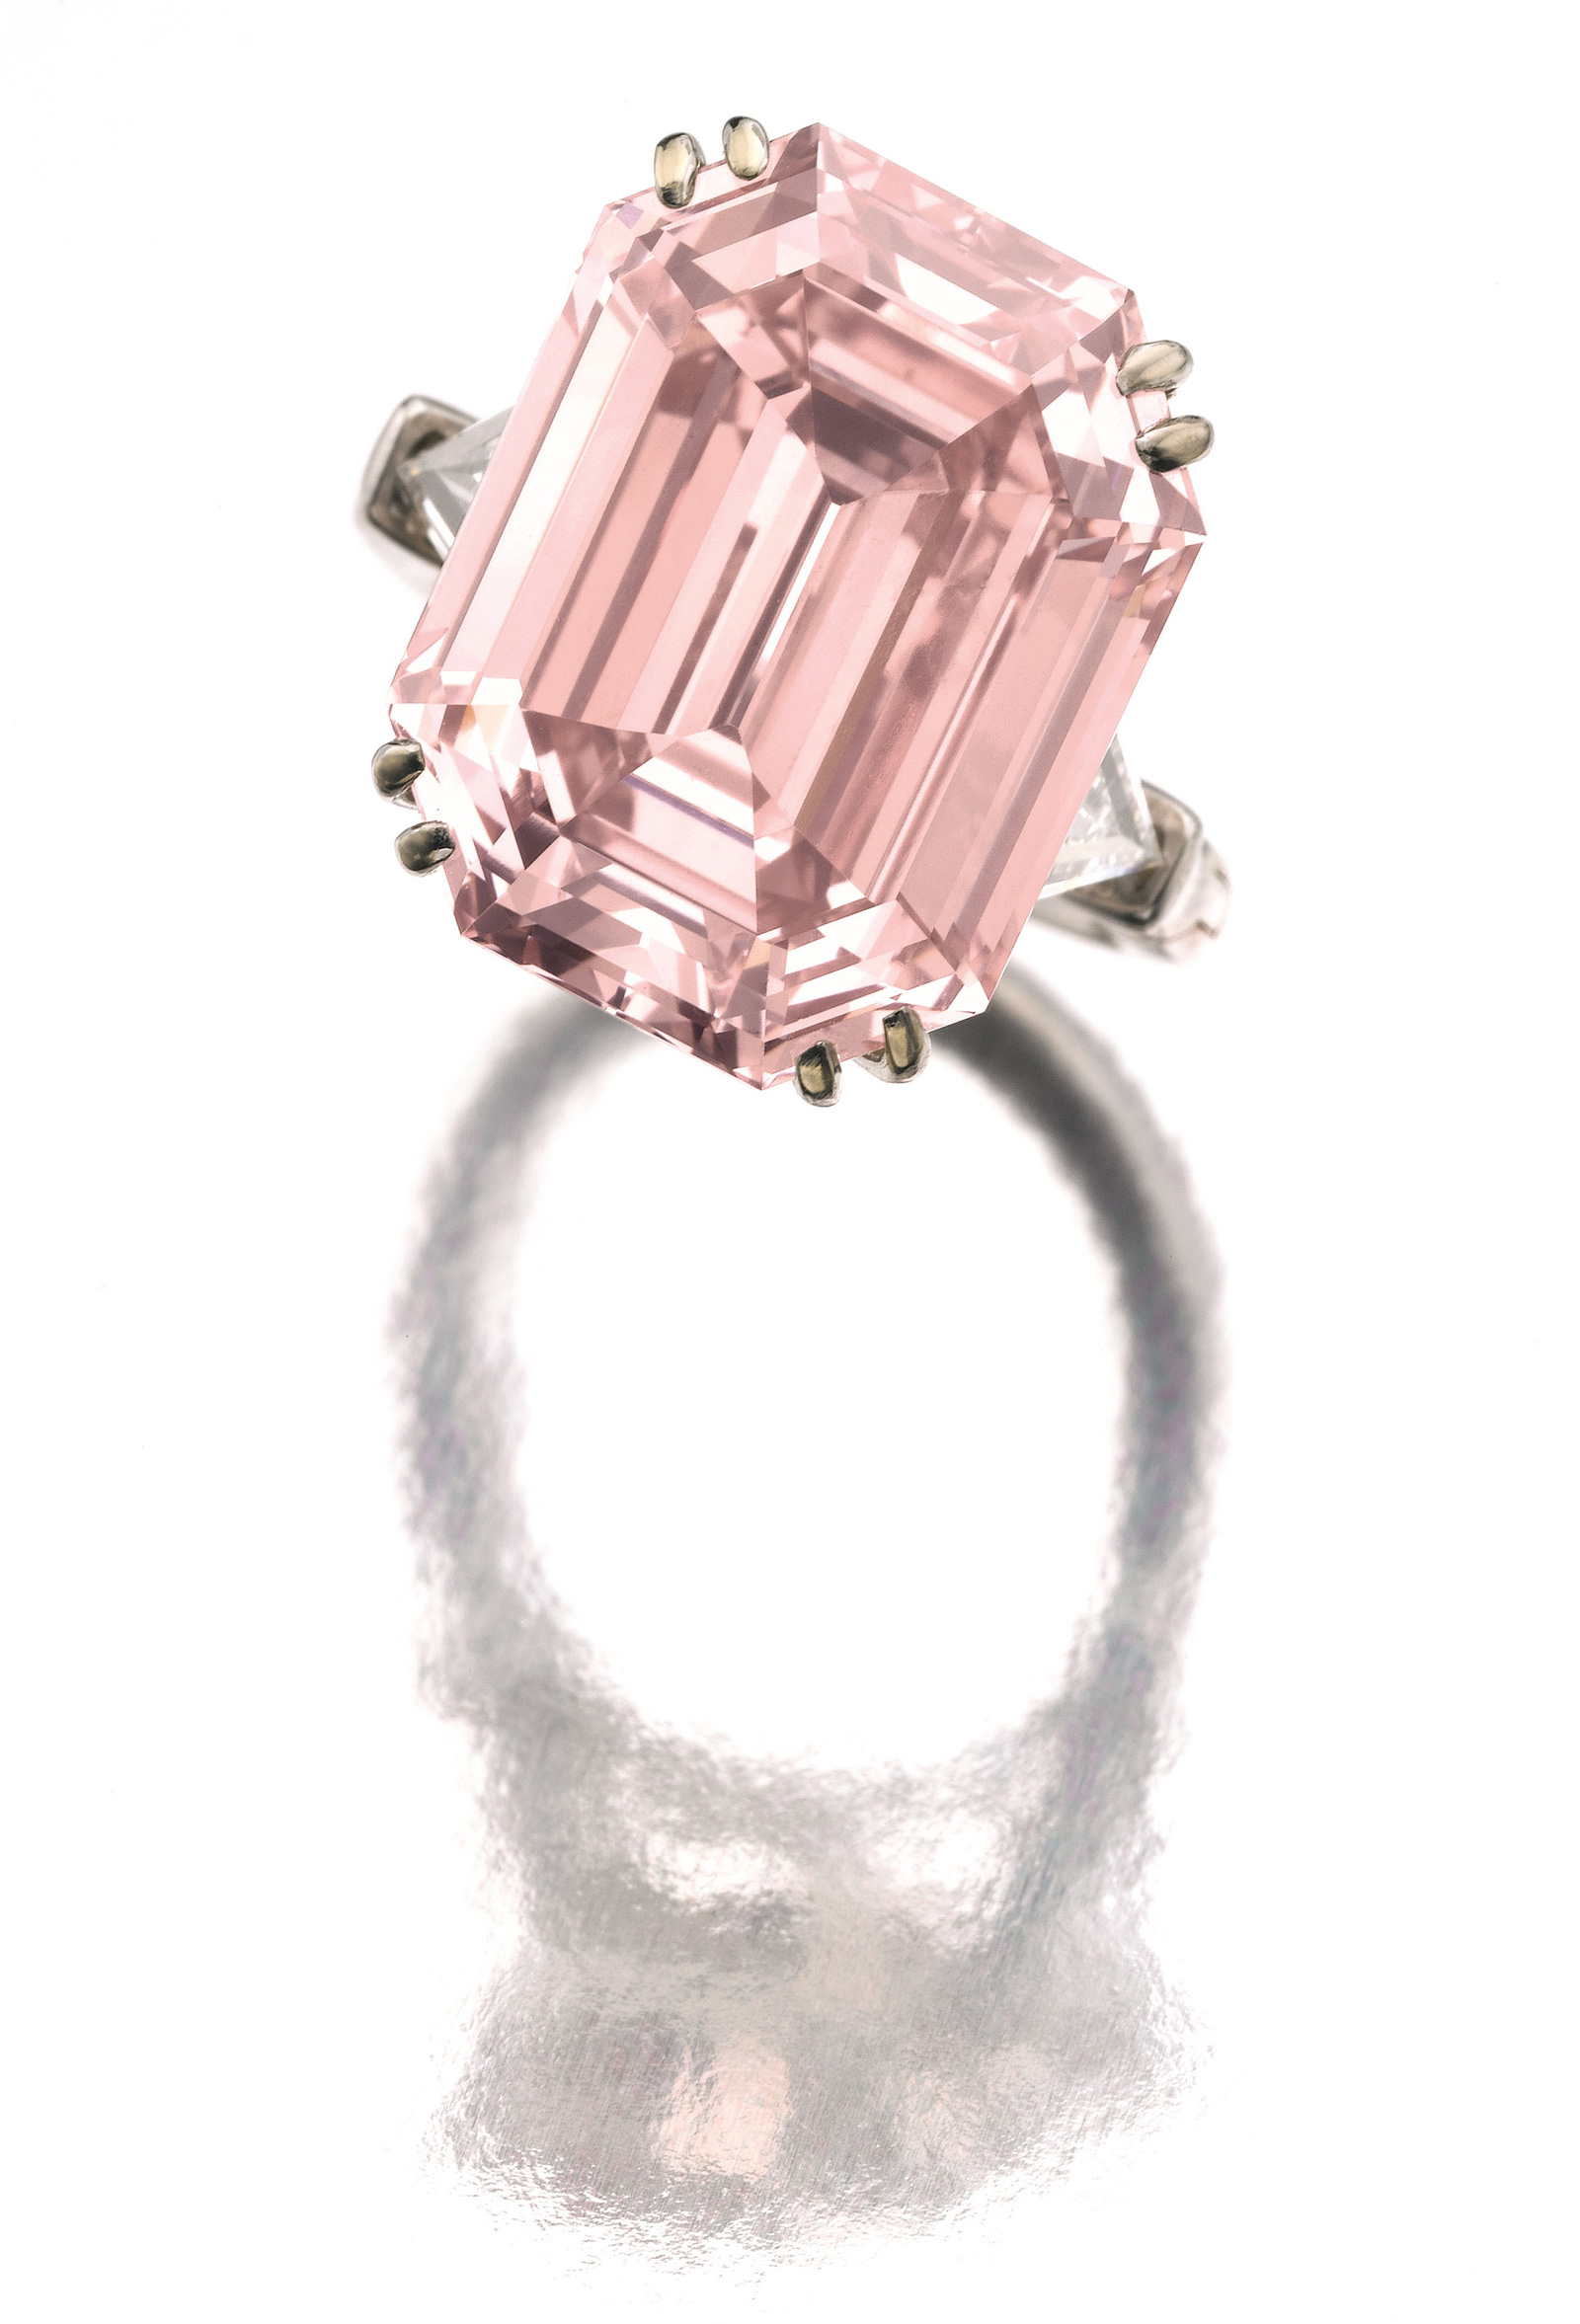 Rare emerald cut pink diamond at Sotheby's